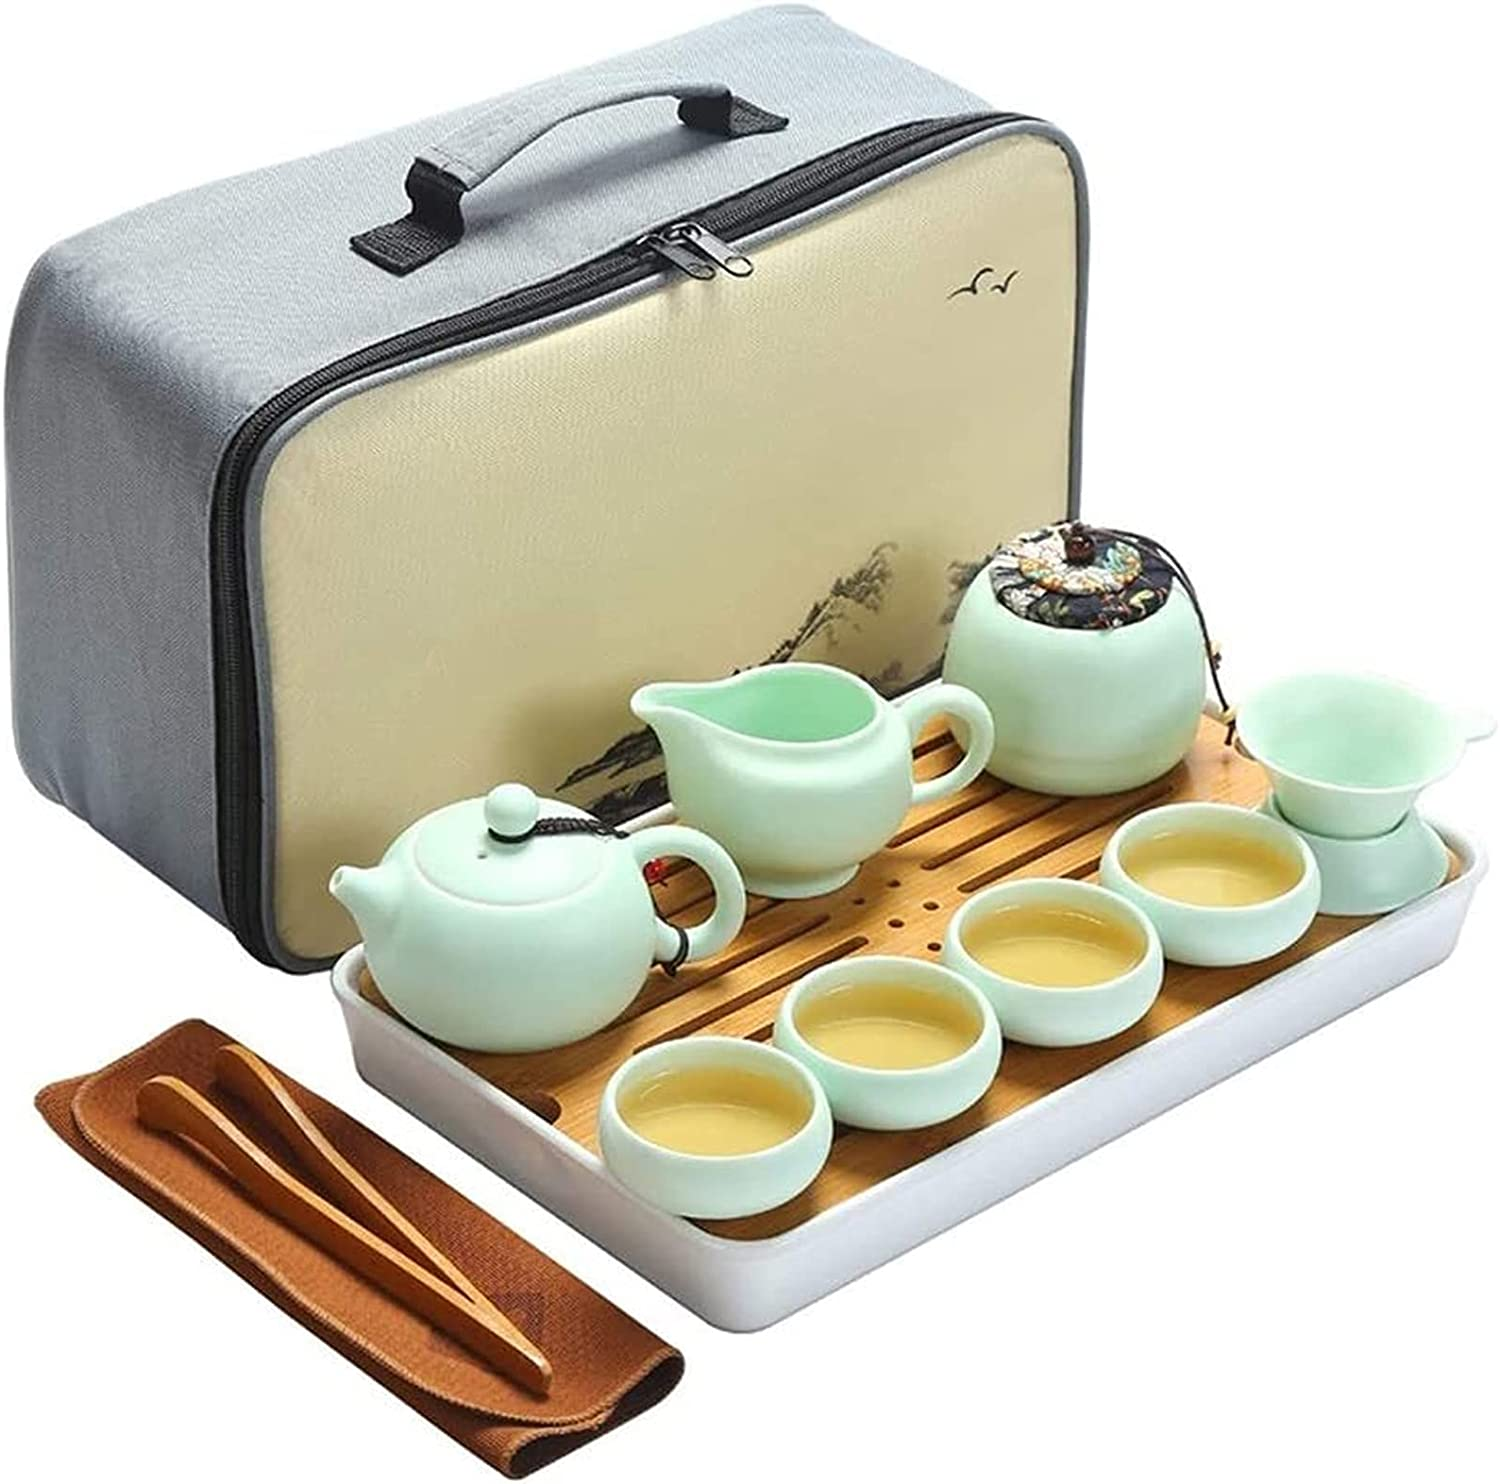 Exquisite San Francisco Mall Teapot Portable Storage Bag Home Car Travel 4 People Overseas parallel import regular item